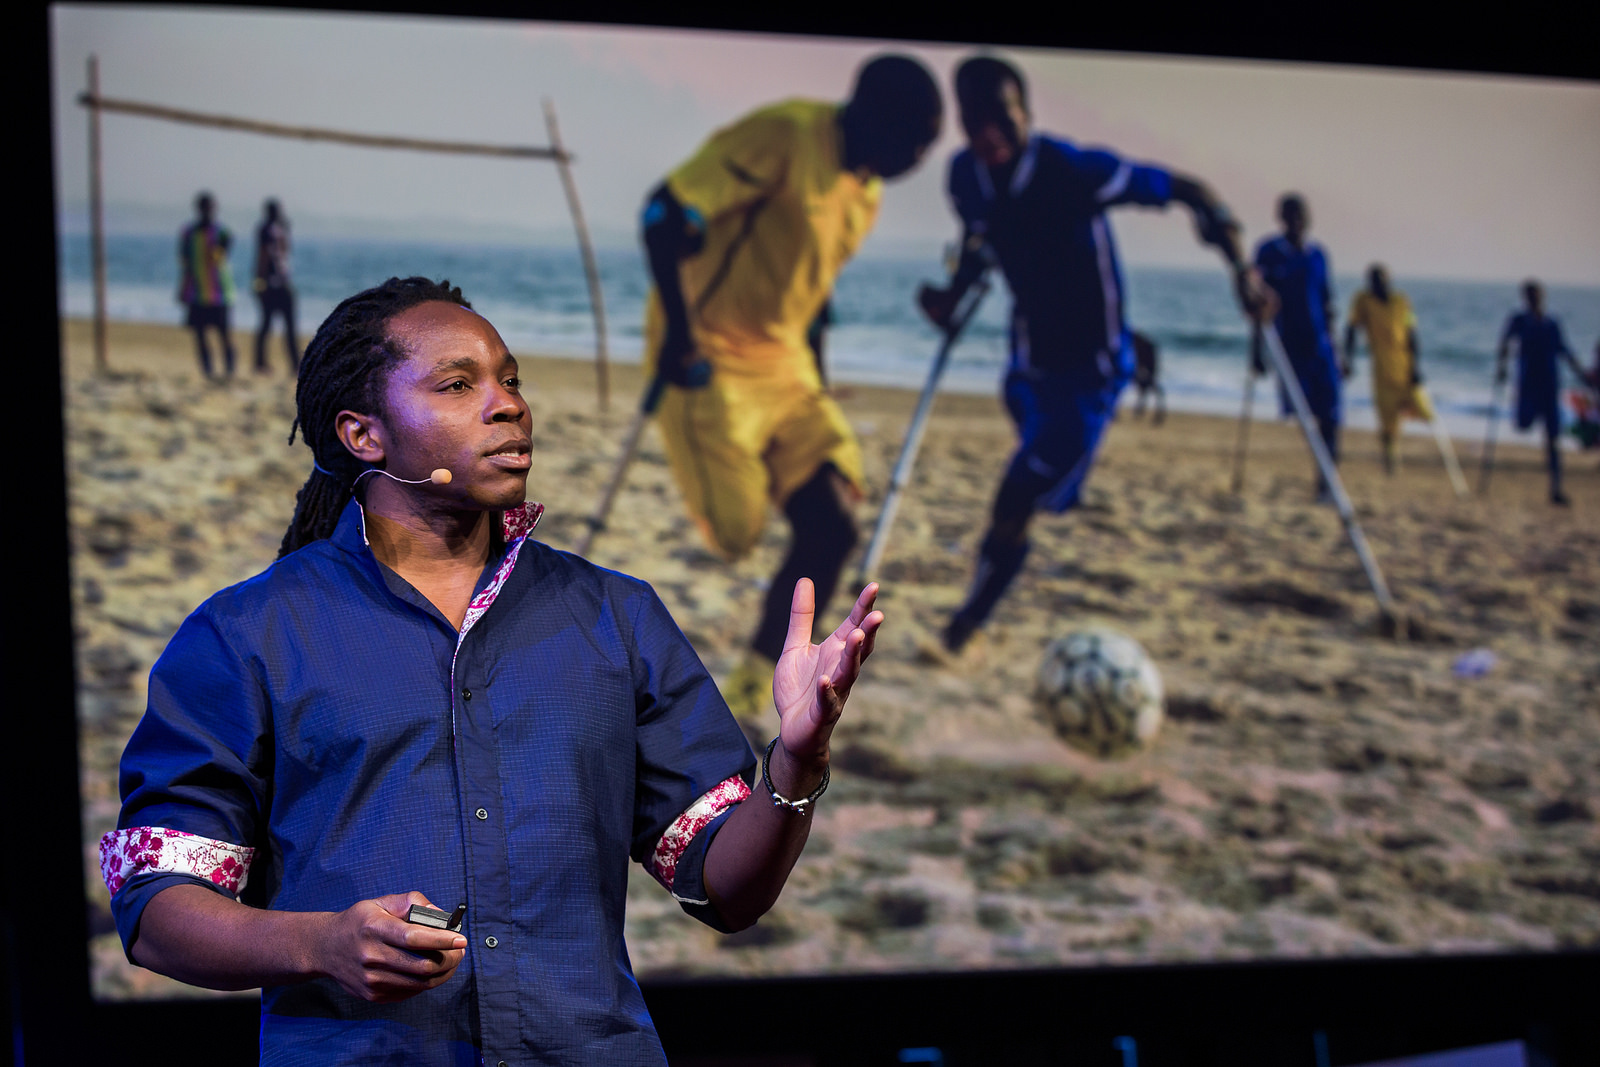 Speaking of Hugh Herr's team at the MIT Media Lab, David Sengeh works there. And is dedicated to offering good options to amputees in his home country of Sierra Leone. Photo: Ryan Lash